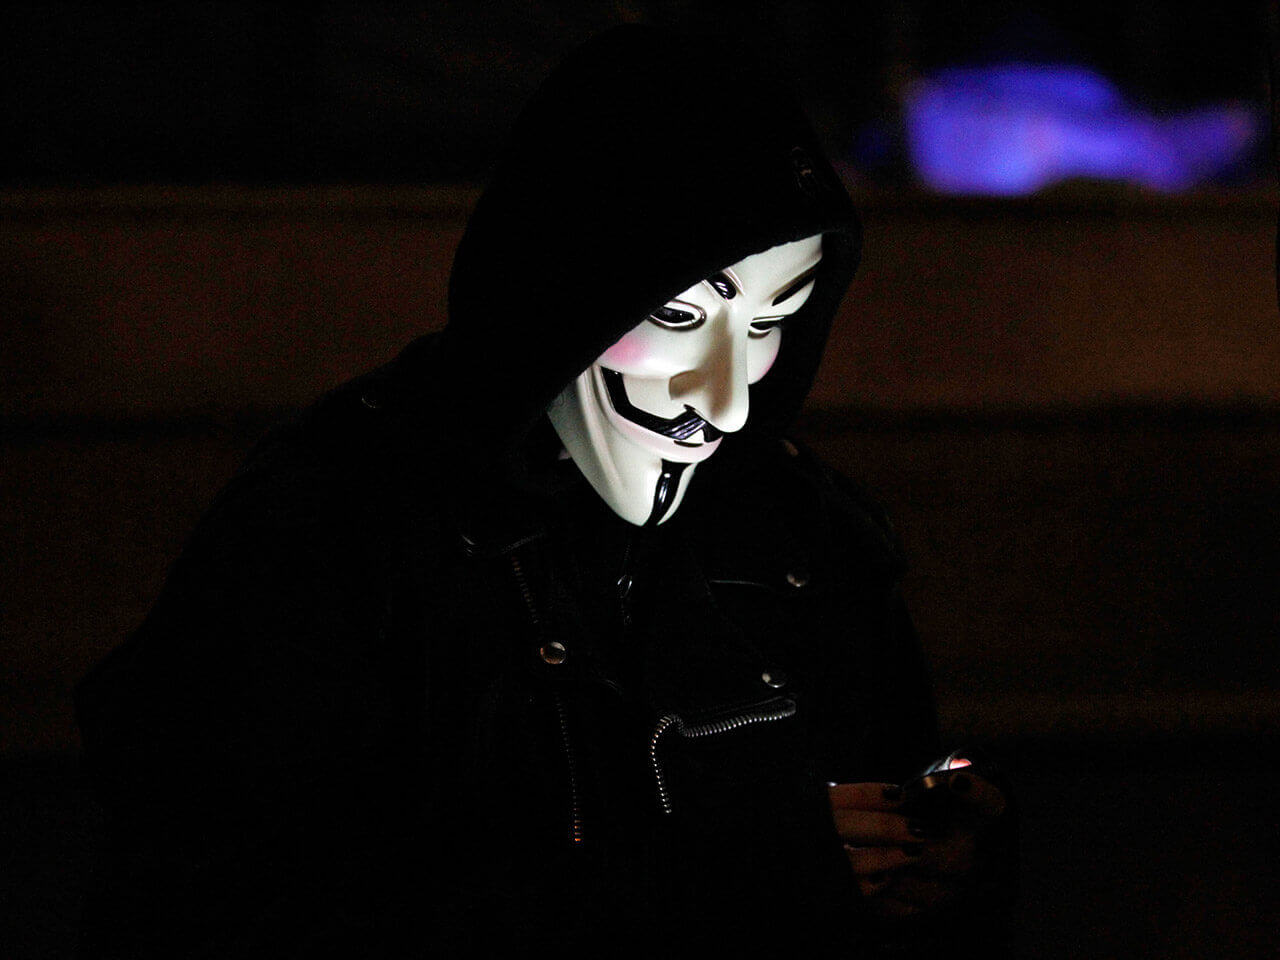 An anti-corporate protester's mask is lit by the light from her mobile phone in Oakland, California, November 11, 2011. (Photo by Kim White/Reuters)